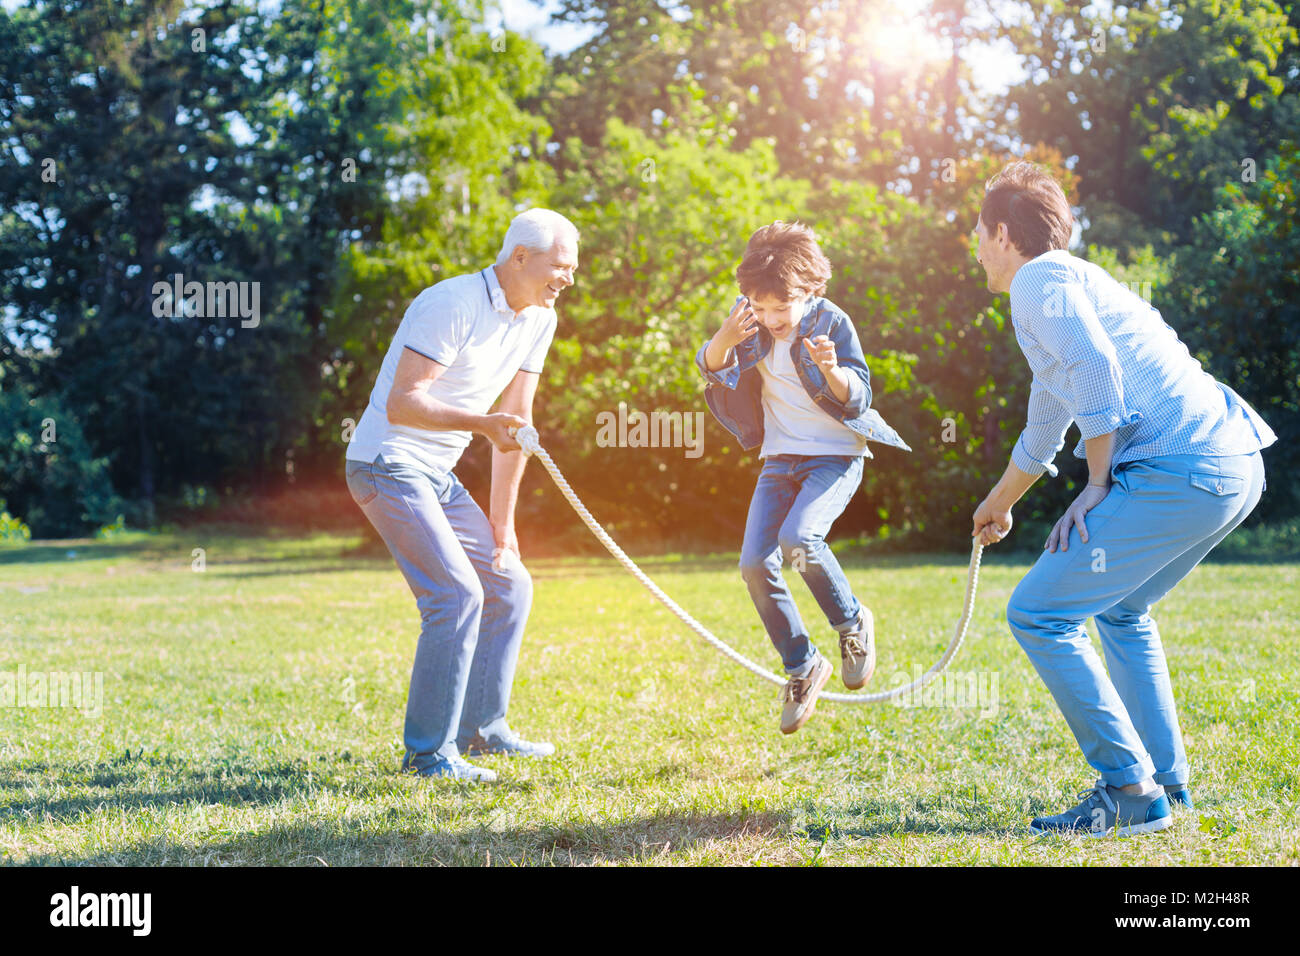 Supportive family playing with jump rope in park - Stock Image